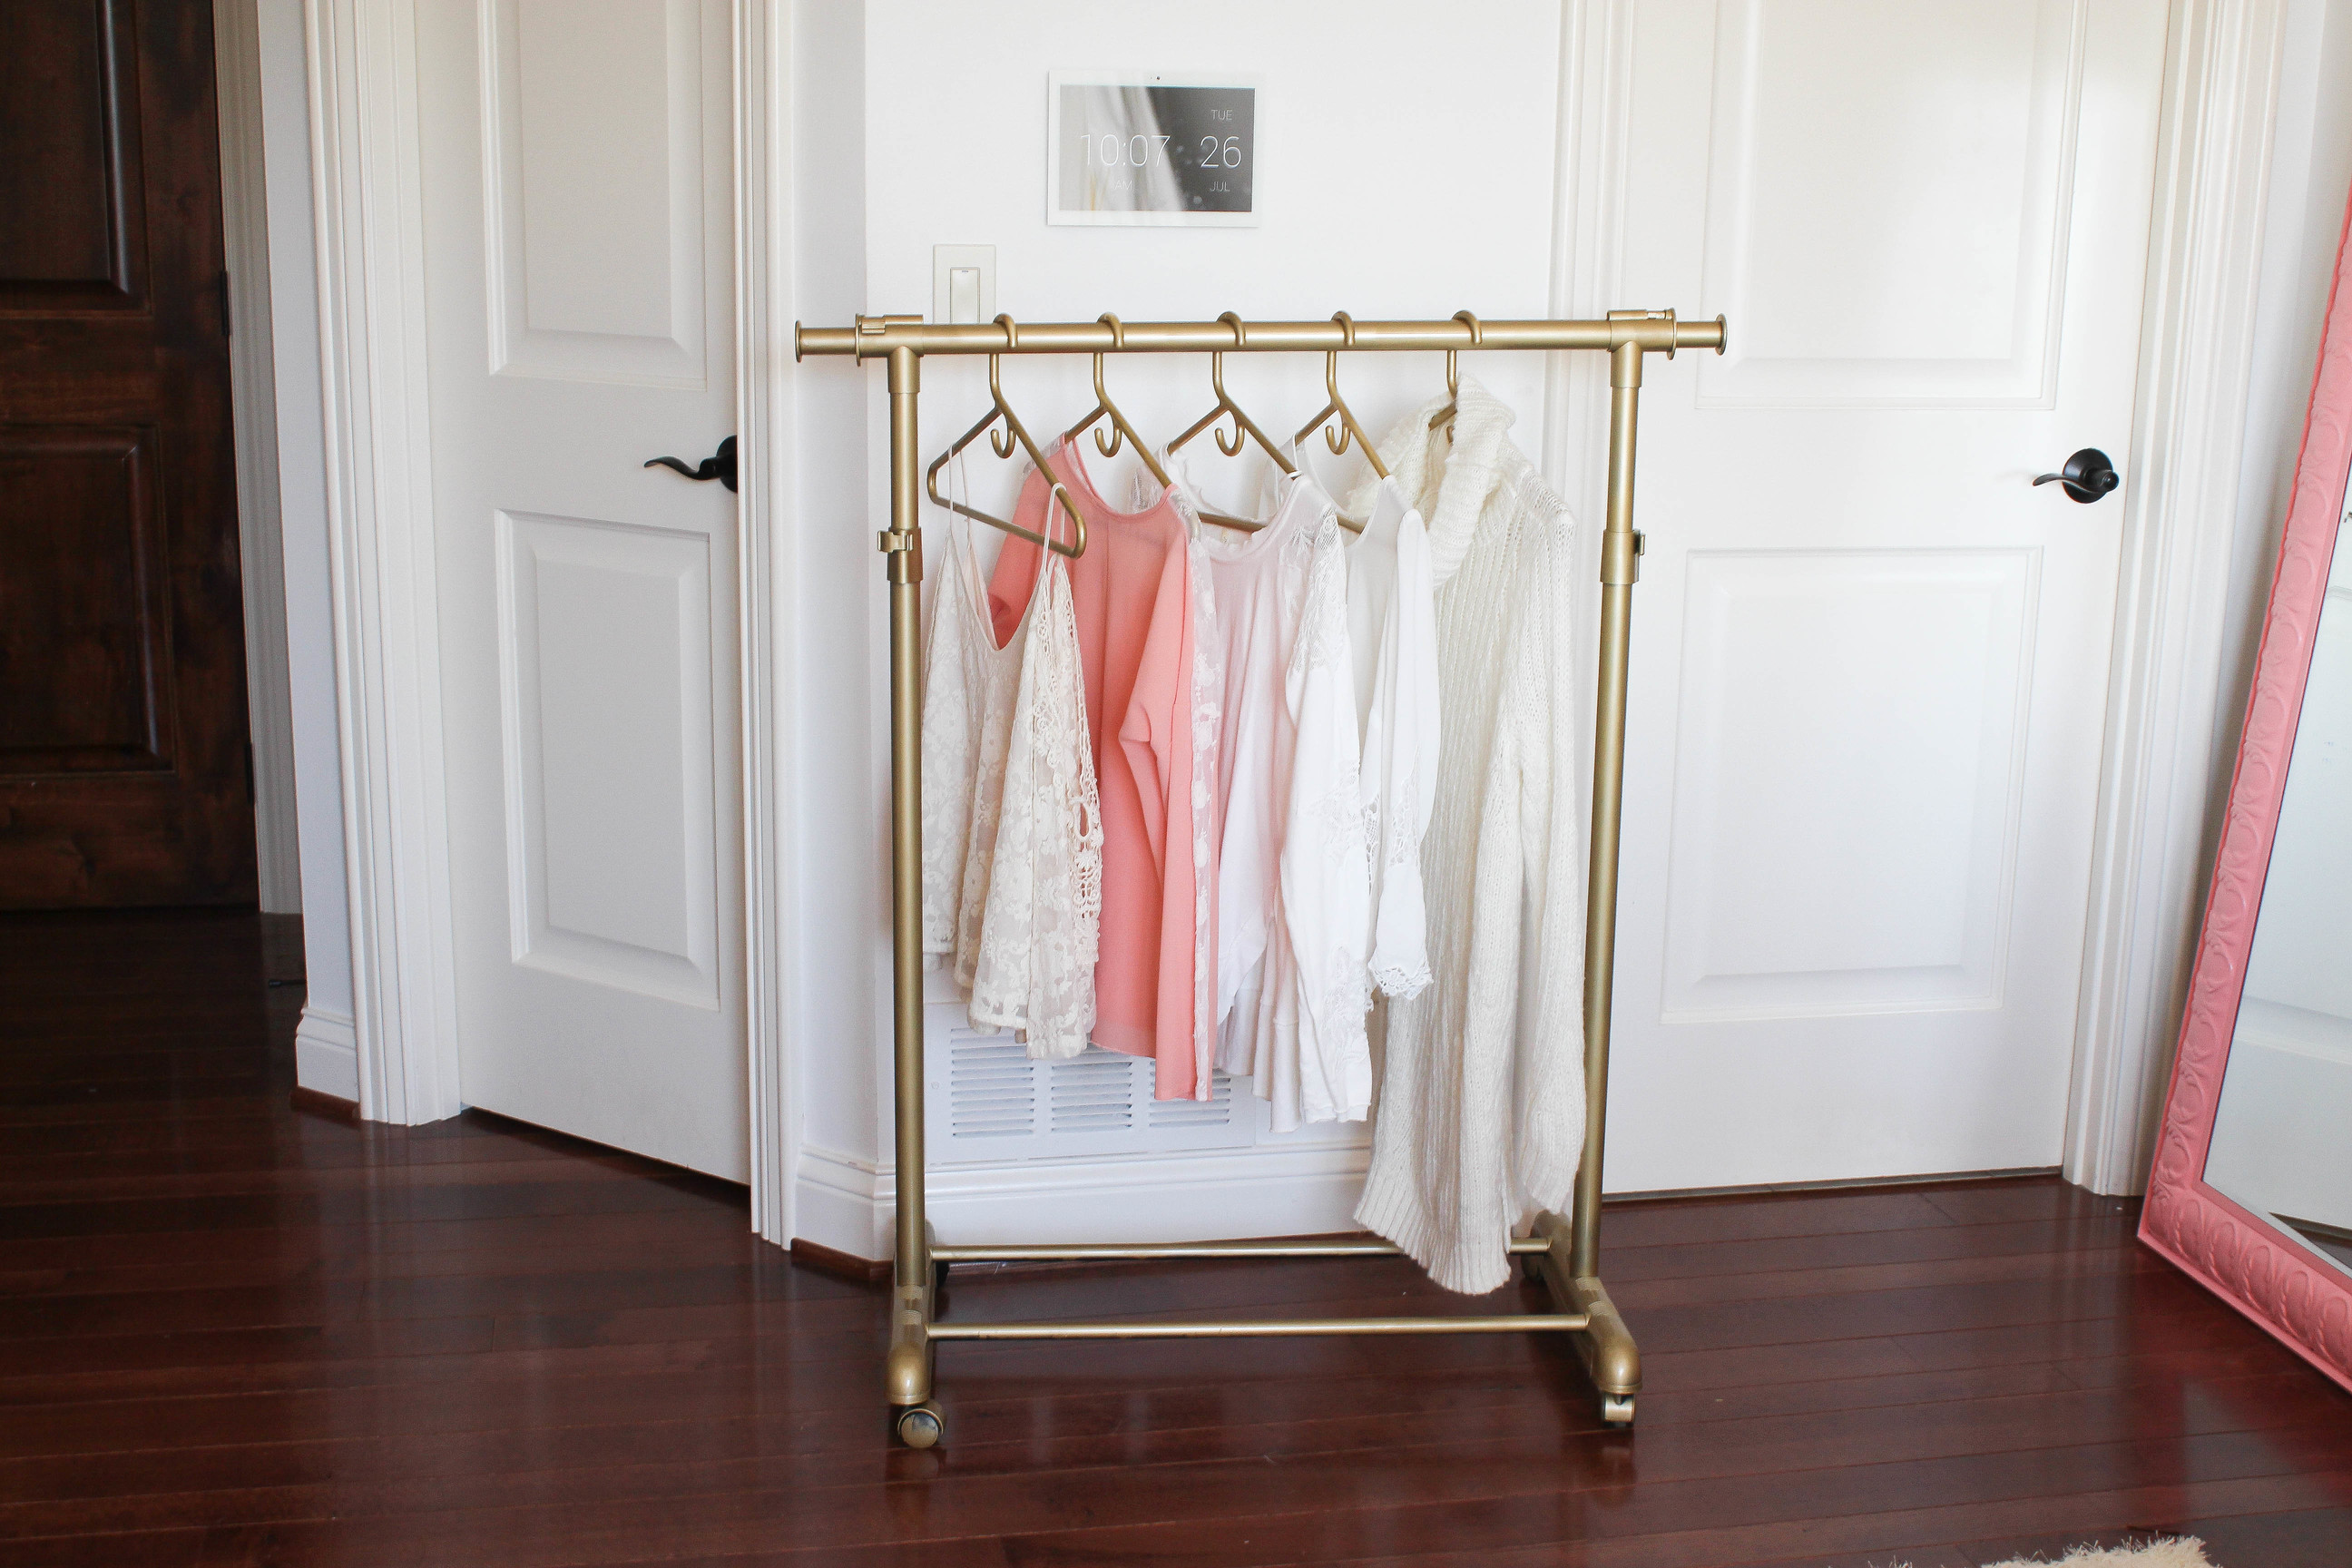 DIY gold clothing rack for UNDER $30 - garment rack - spray painted clothing hanger DIY do it yourself by lauren lindmark on daily dose of charm